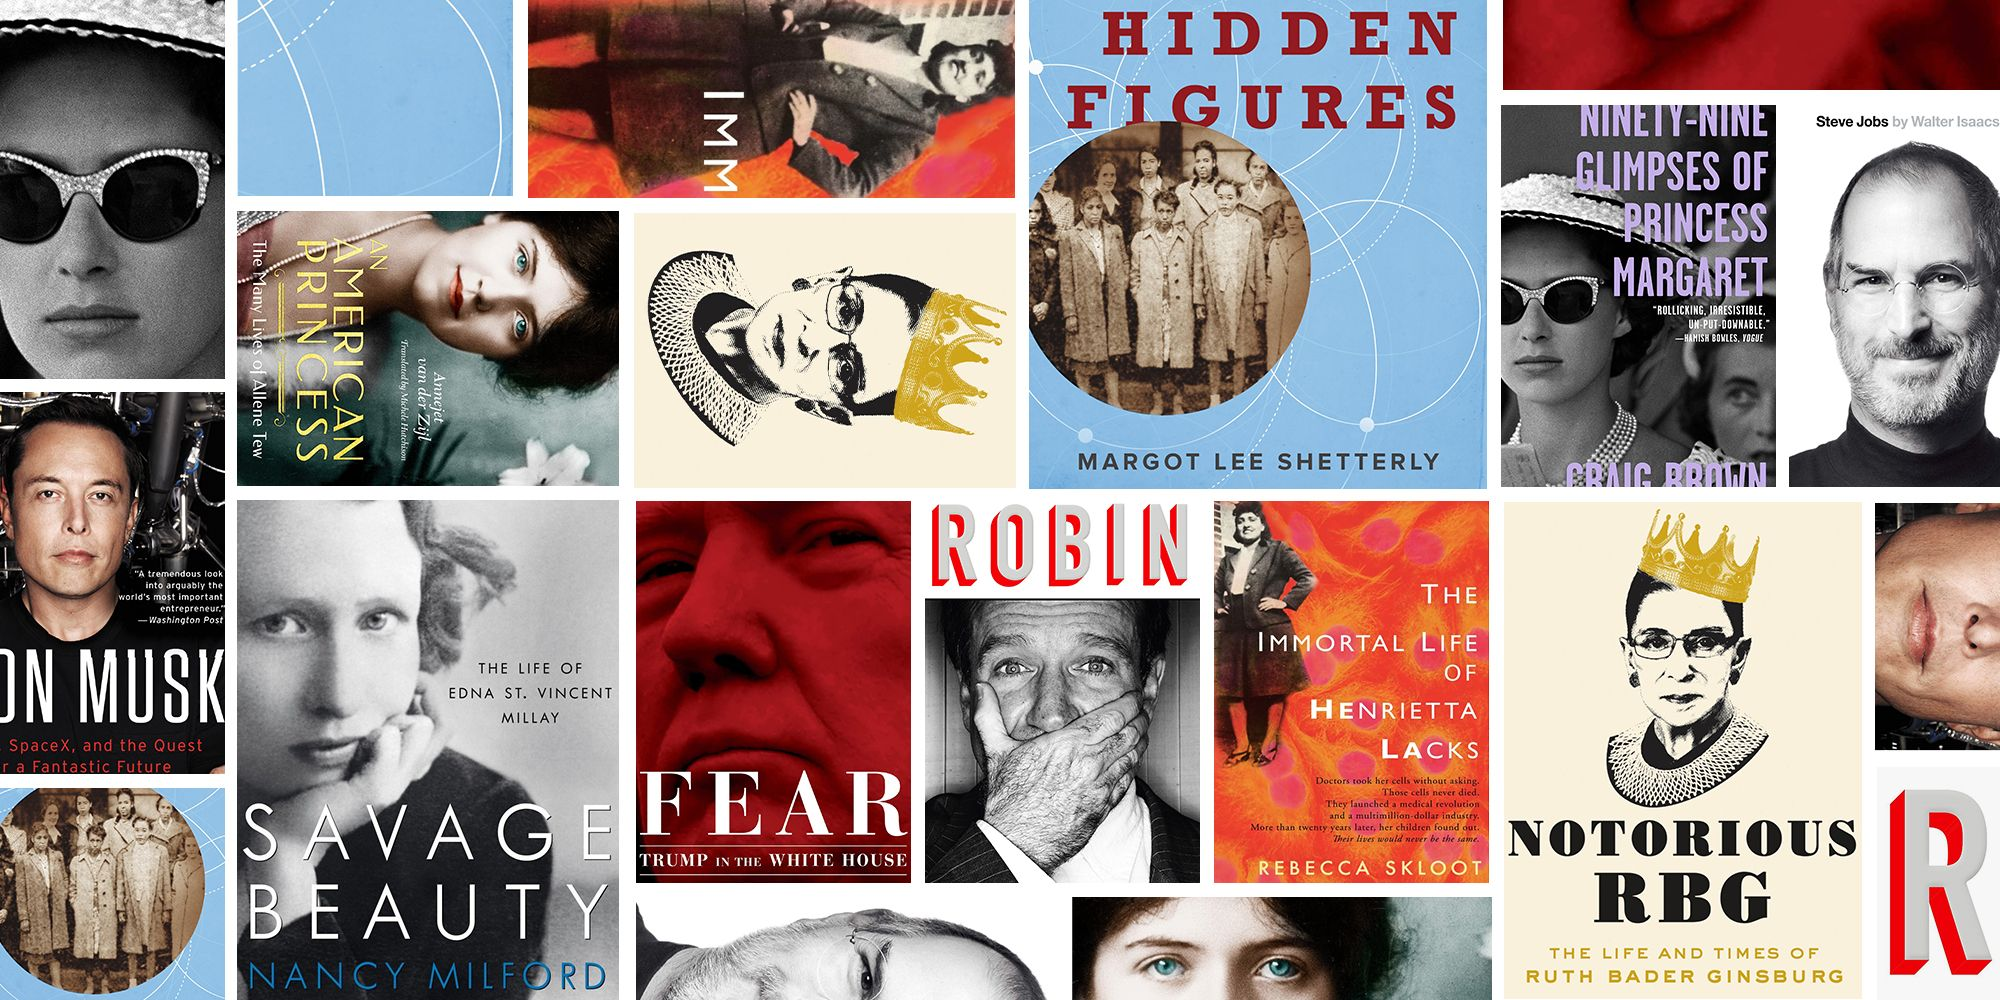 12 Fascinating Biographies to Get You Out of a Reading Rut